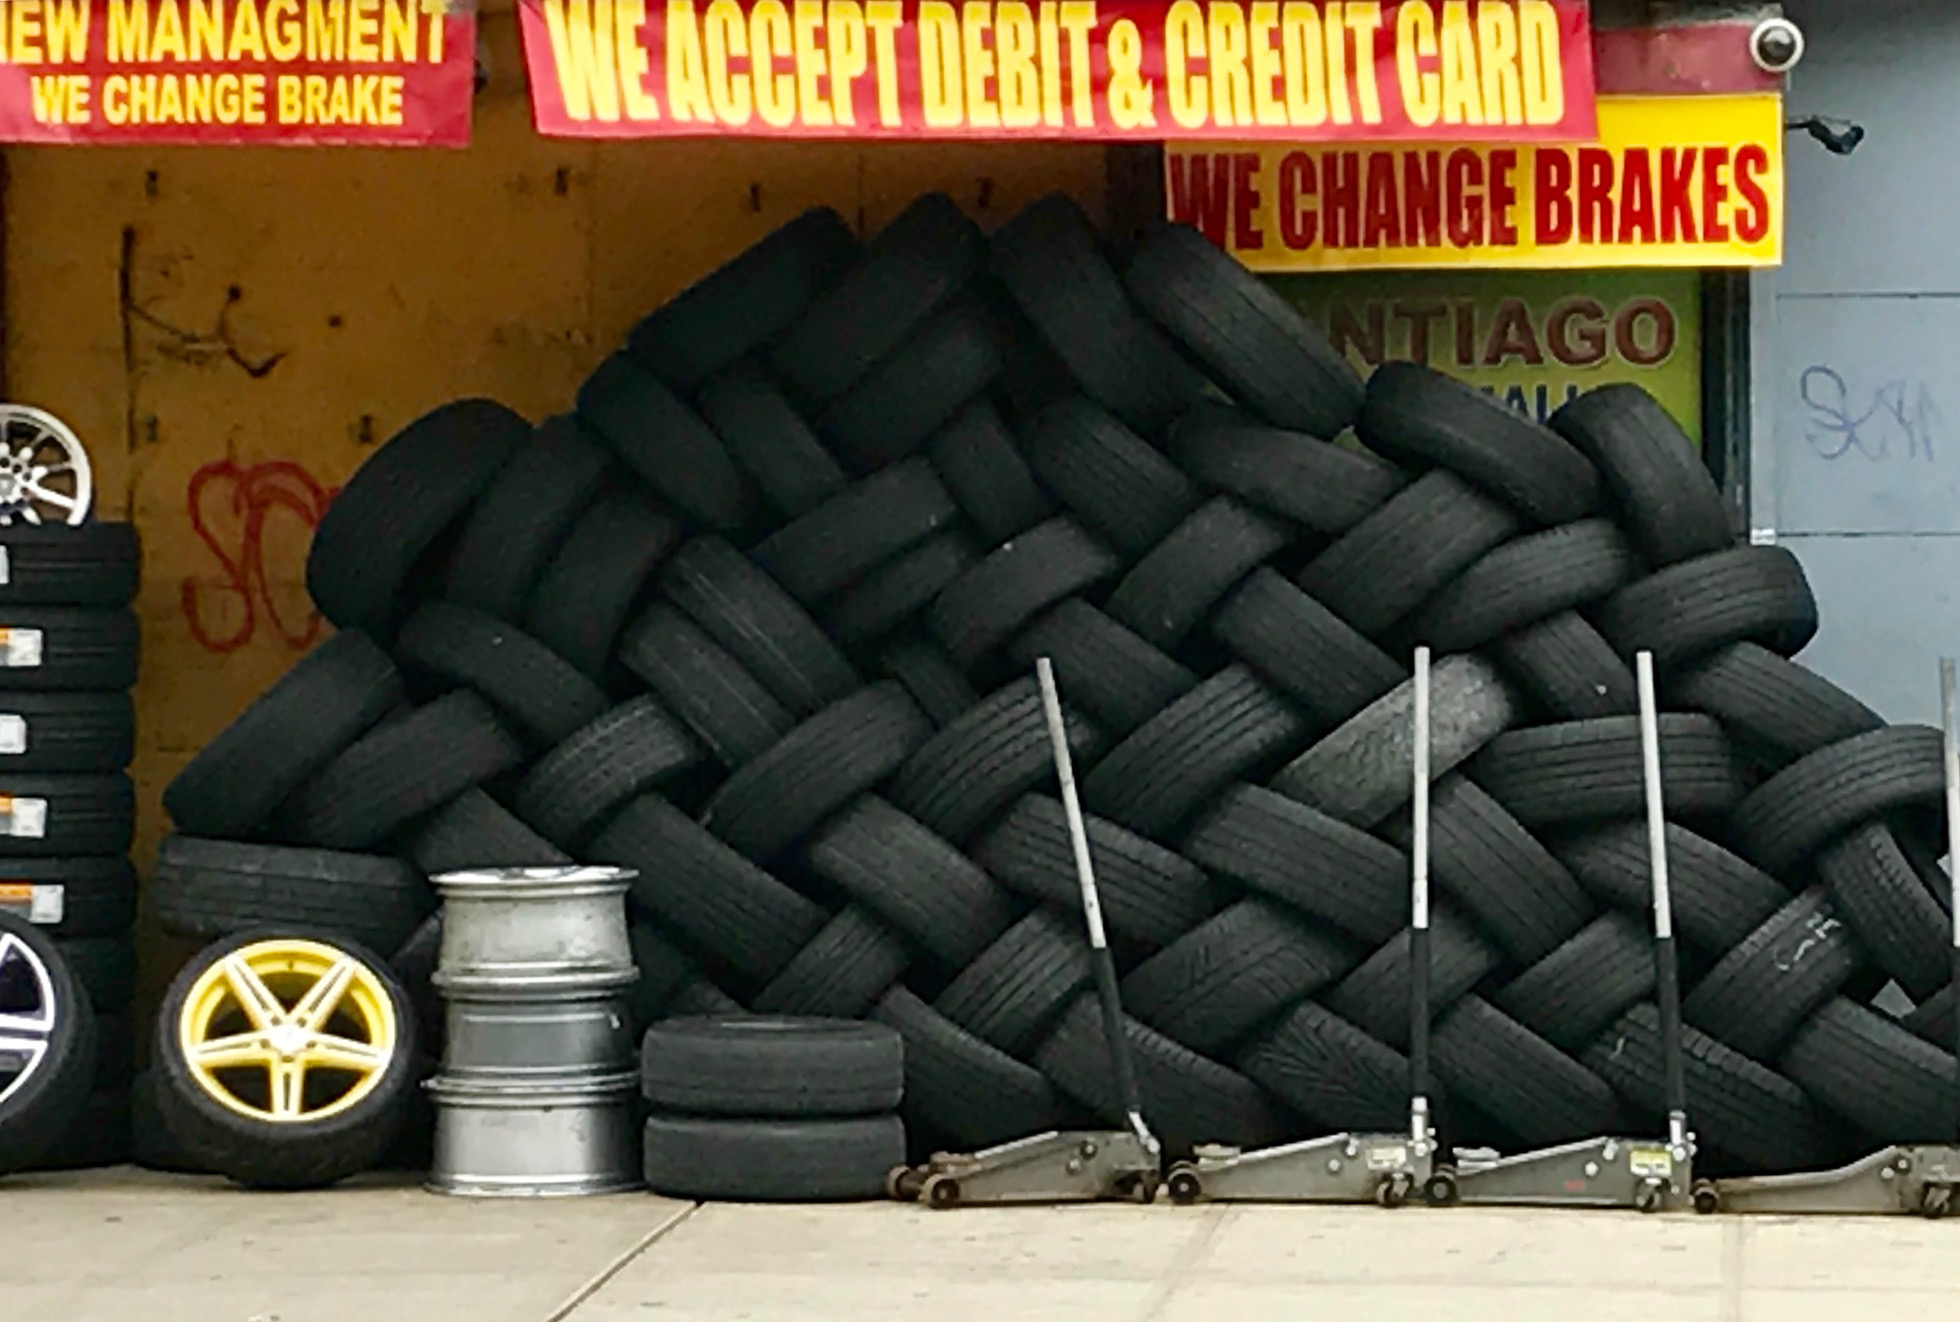 A tire weaving along East 170th across from Claremont Park in the Bronx